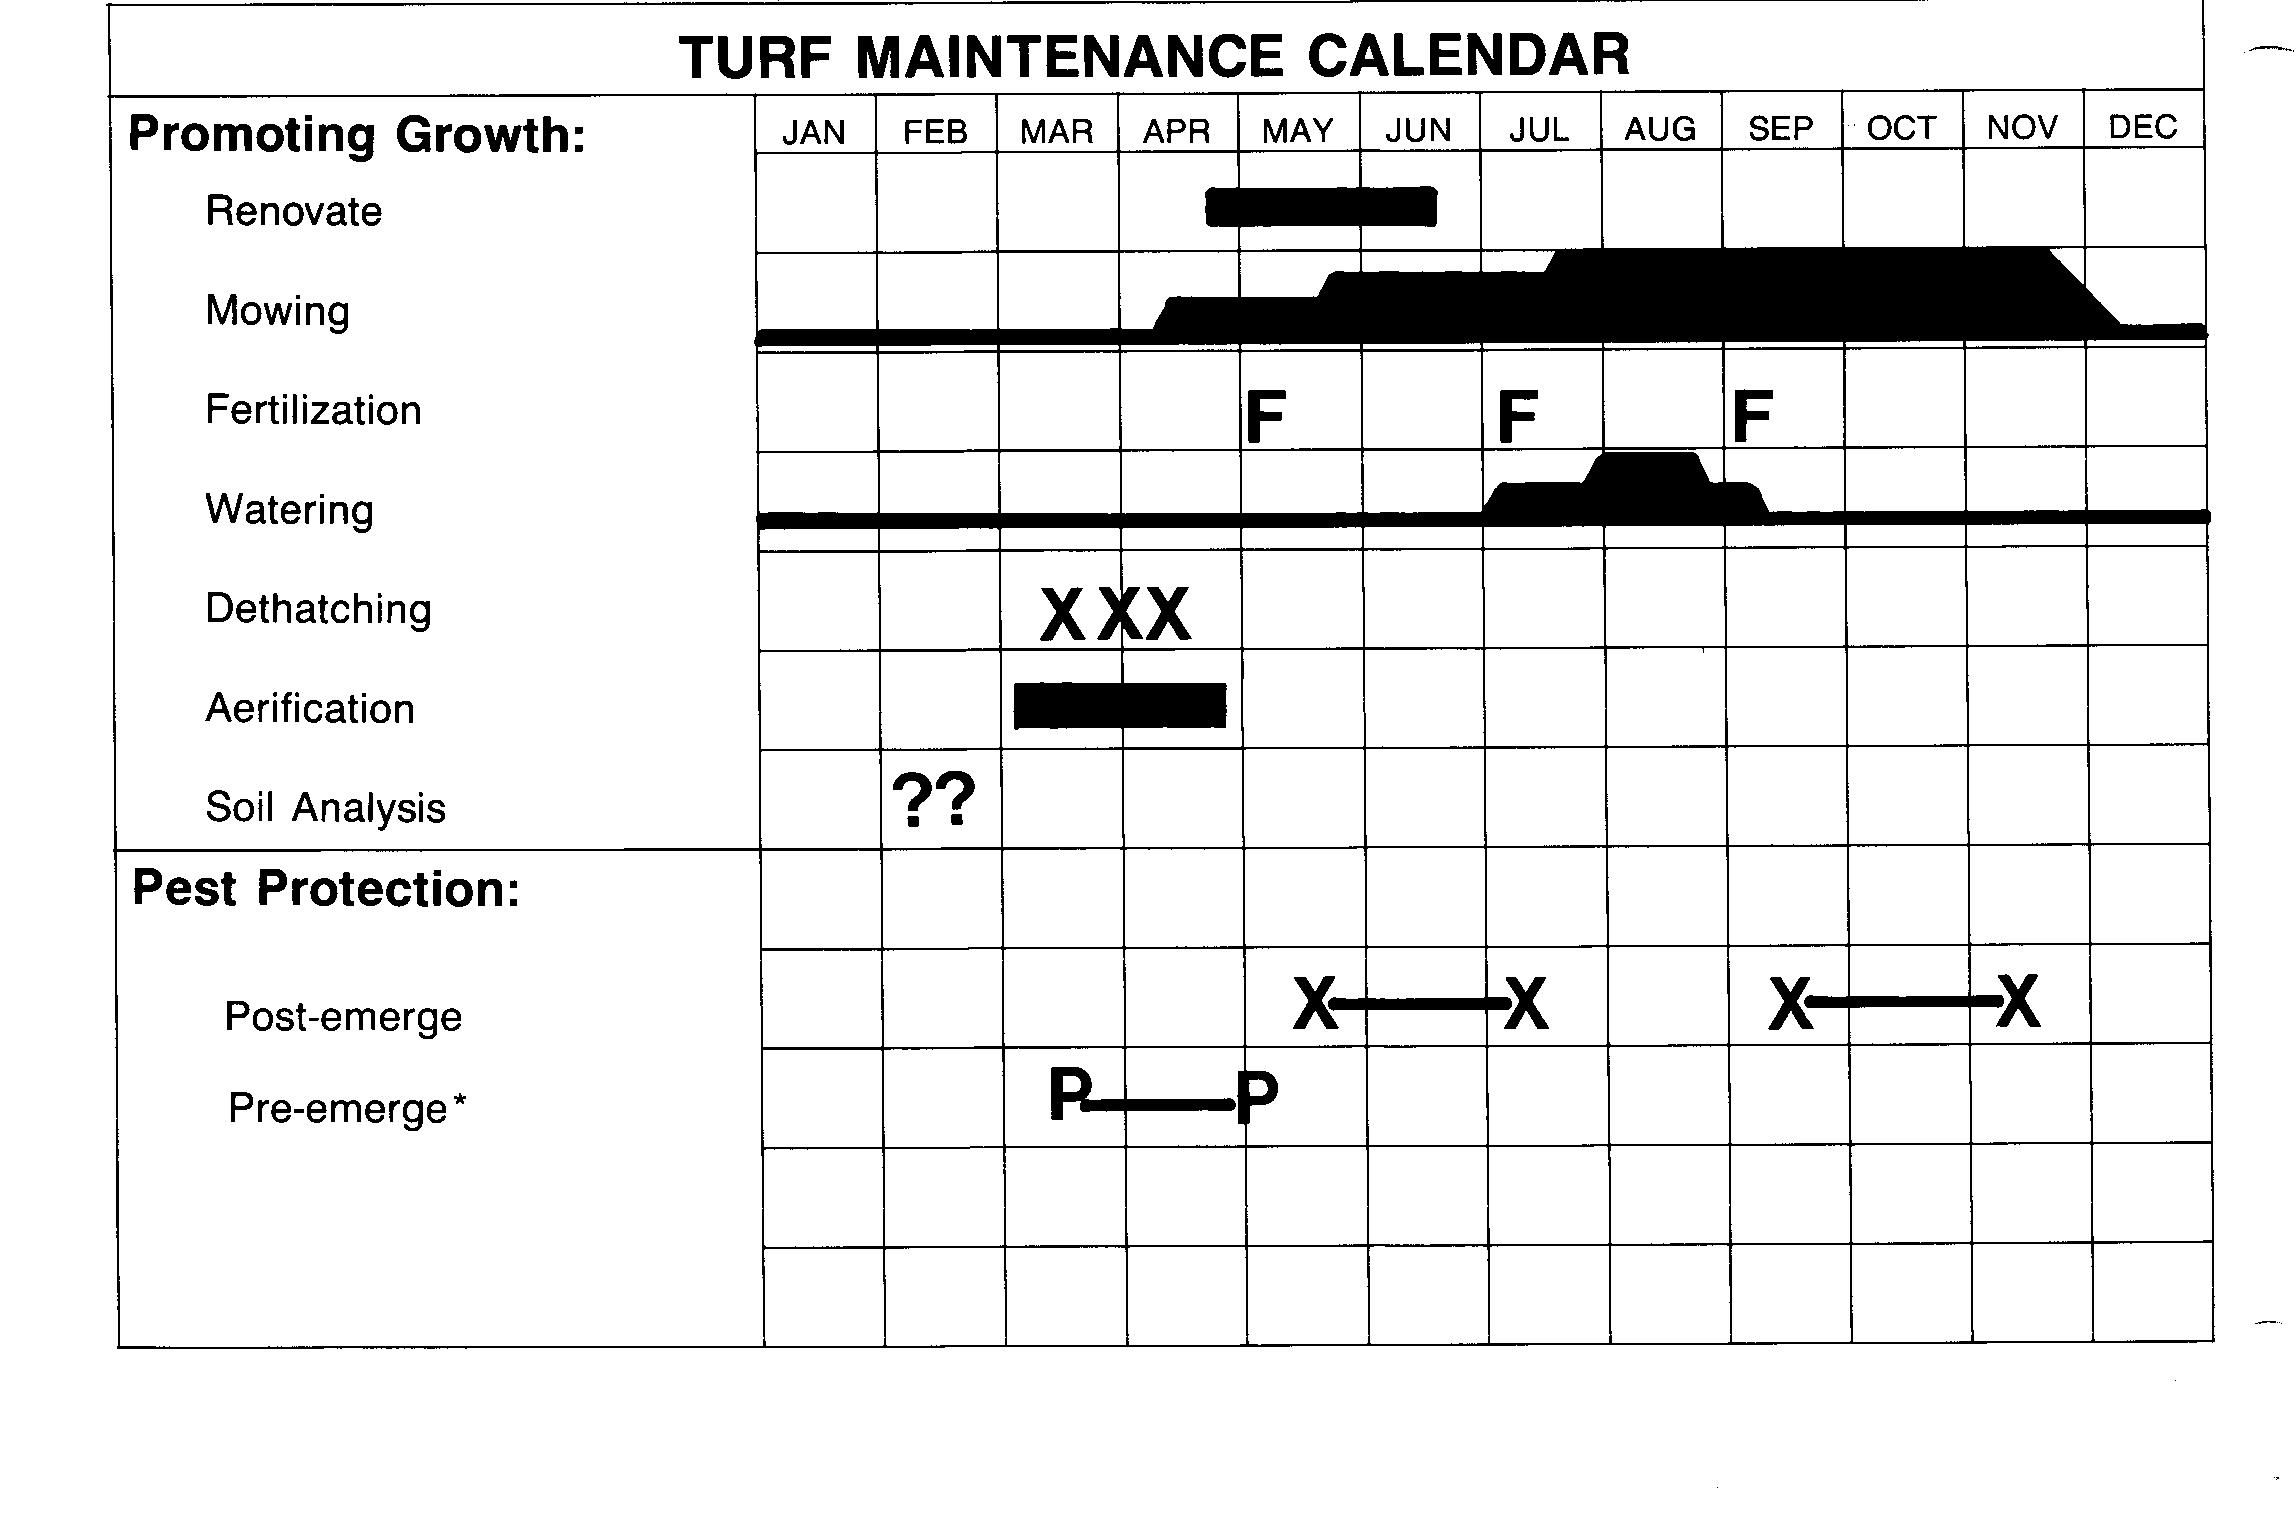 Turf maintenance calendar.